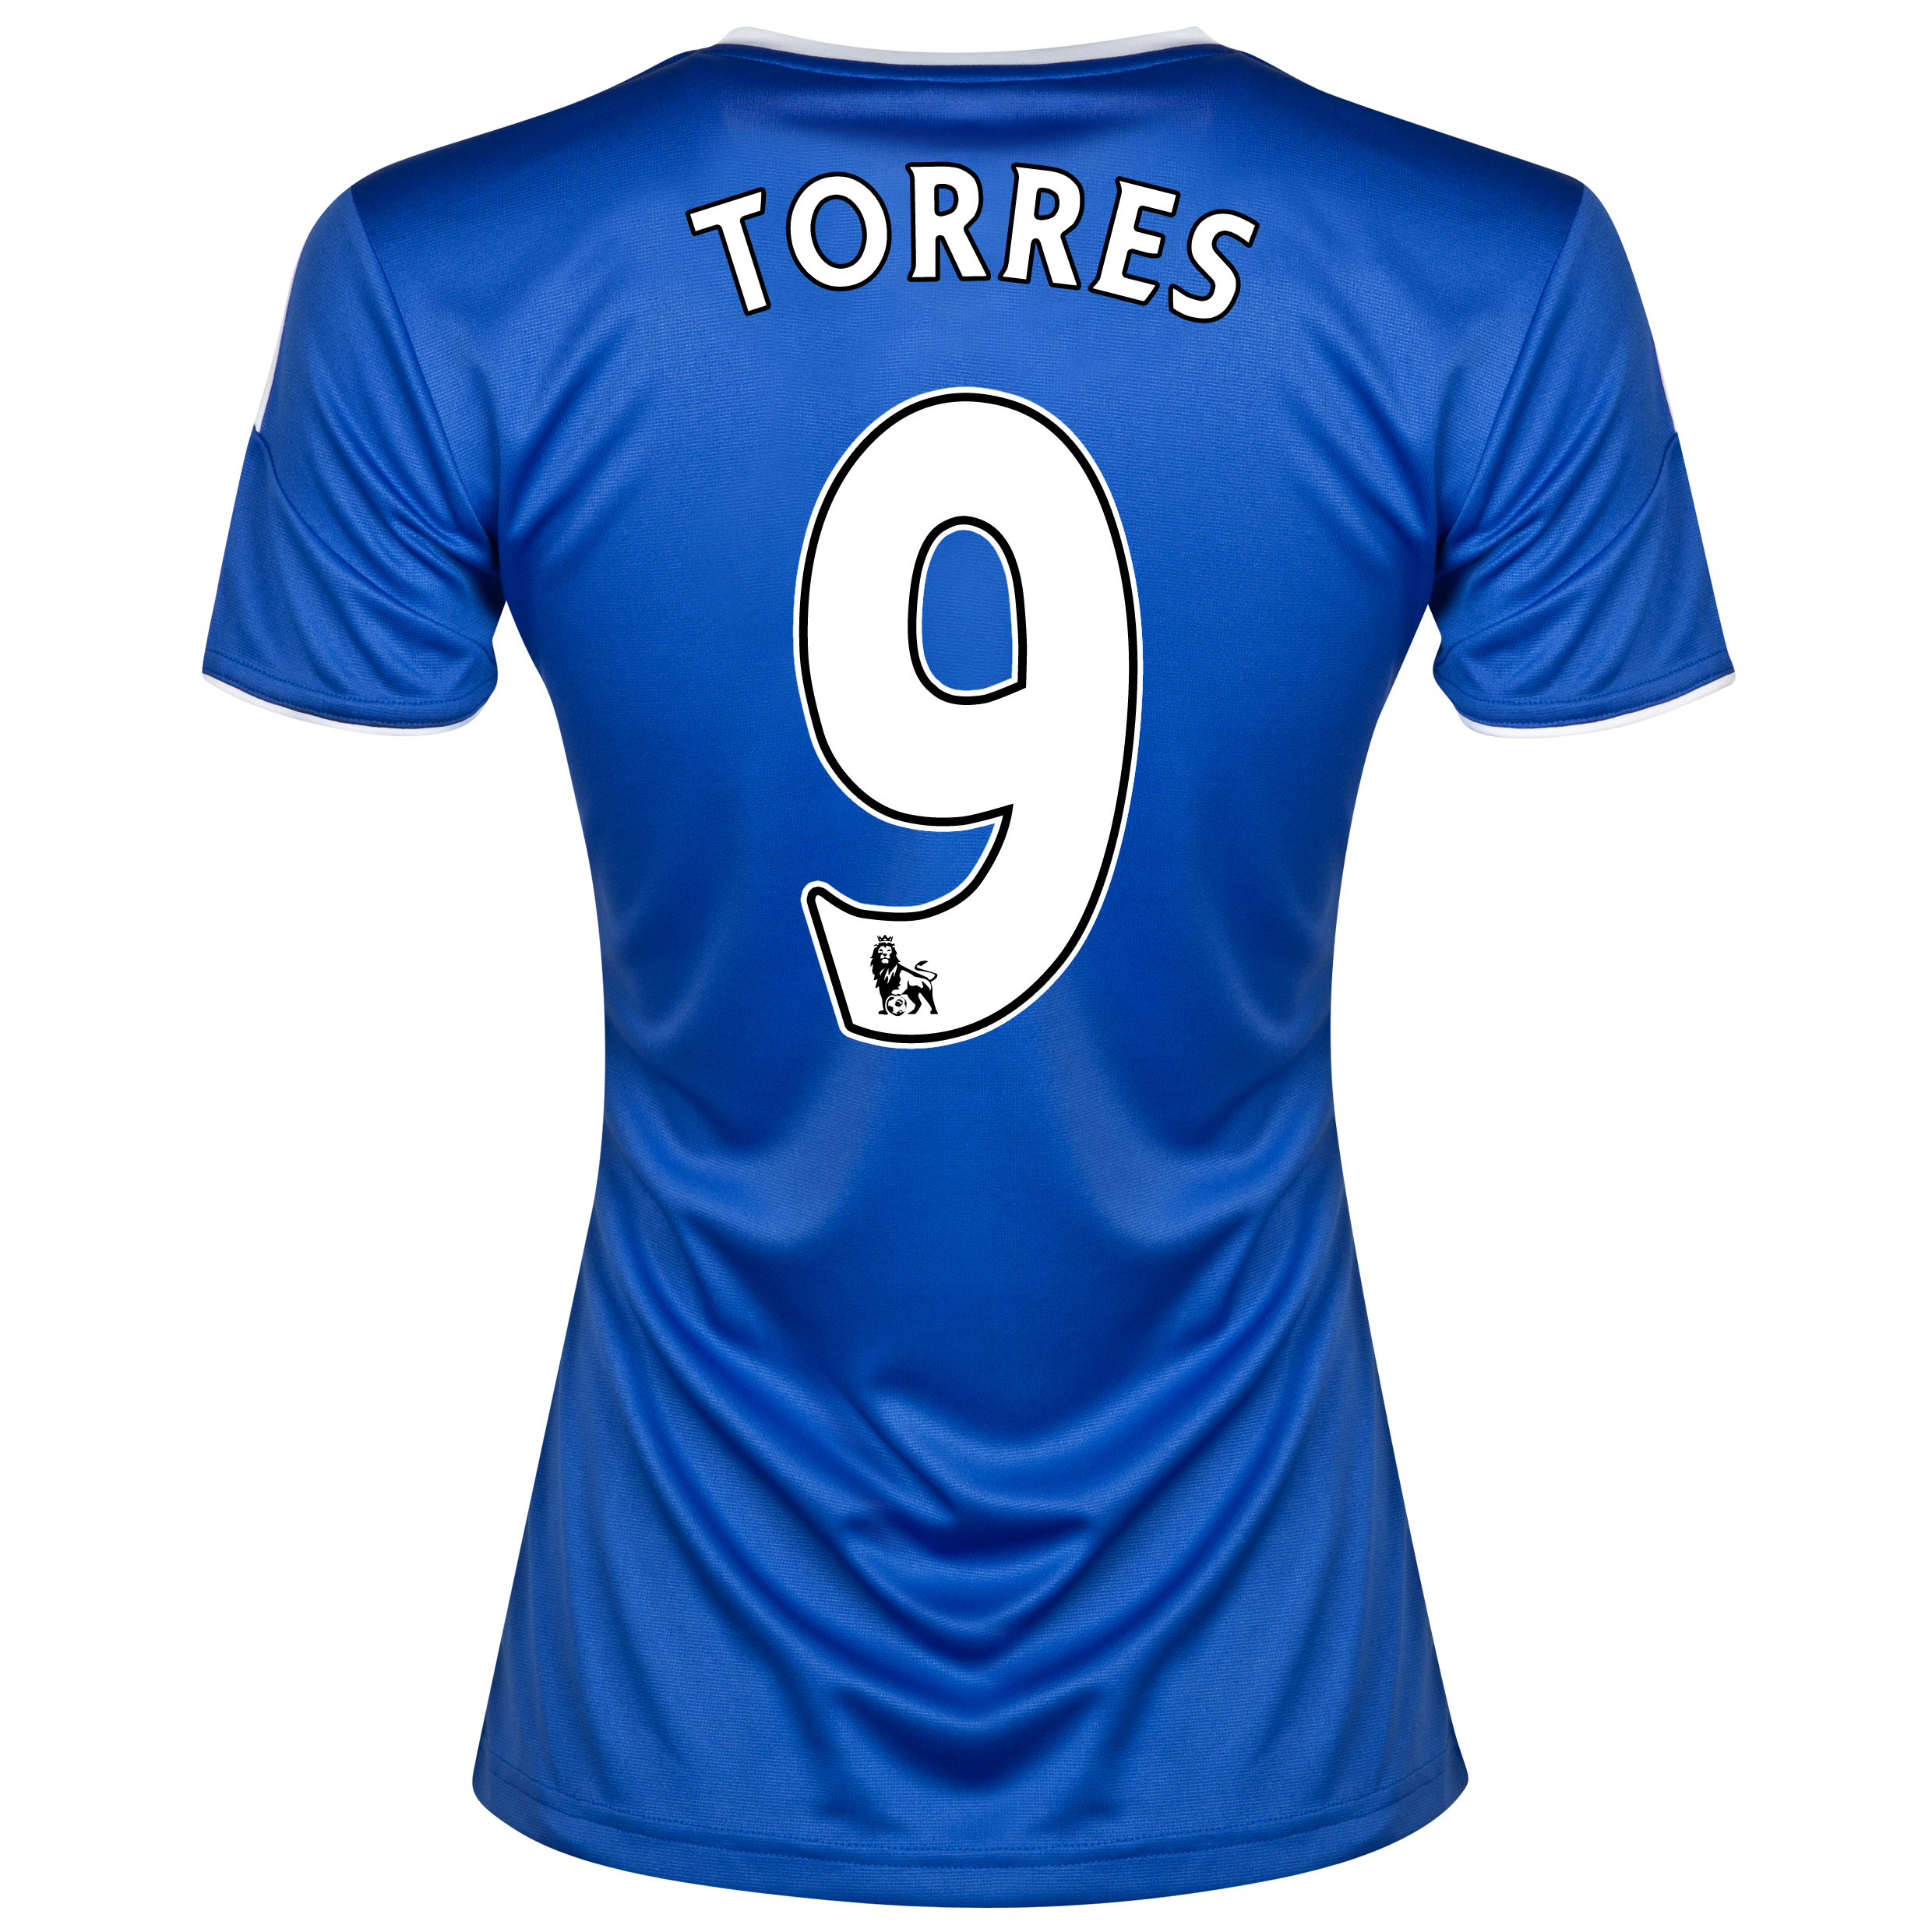 Chelsea Home Shirt 2013/14- Womens with Torres 9 printing